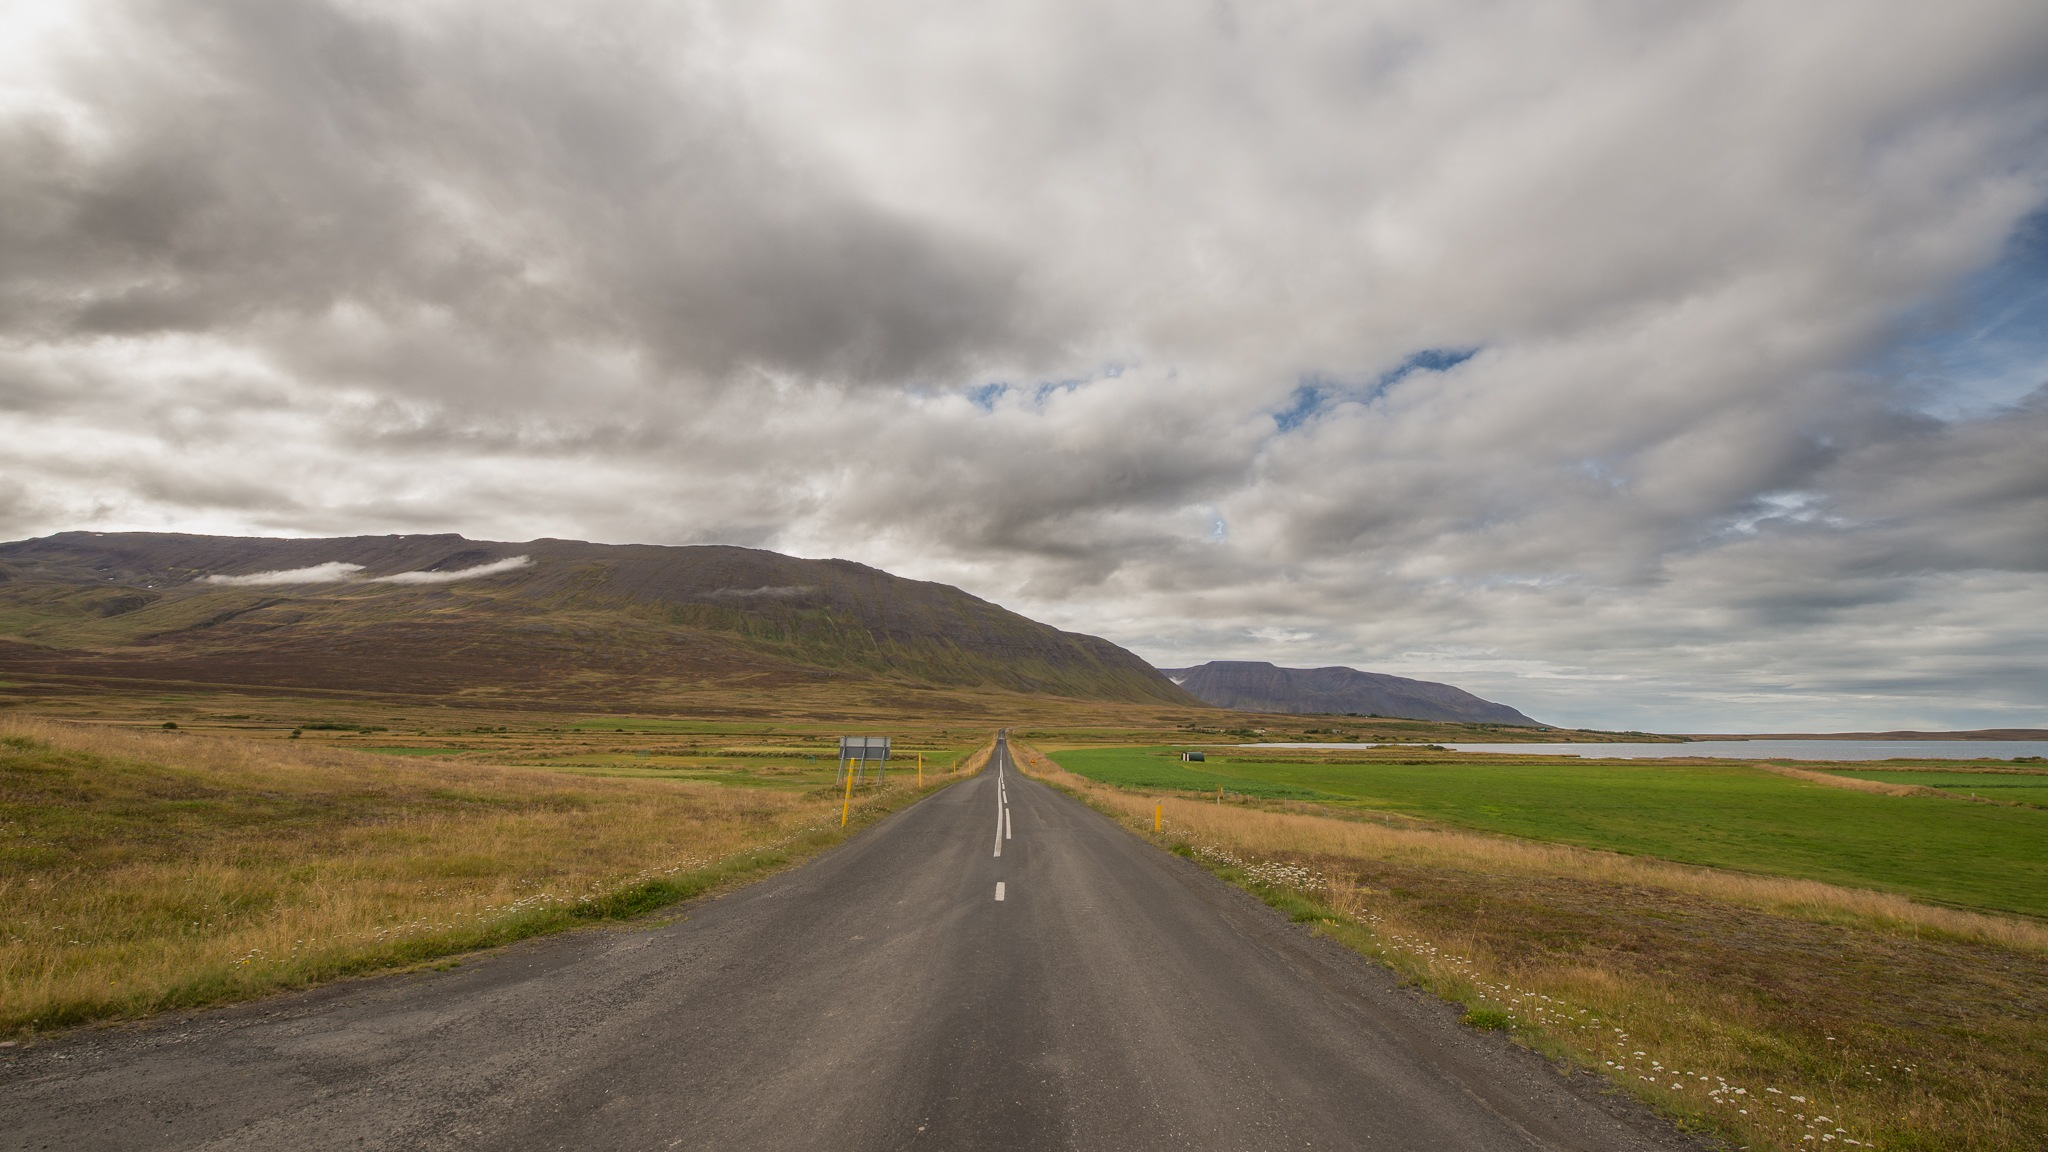 The Lonesome Road by Shawn Harquail